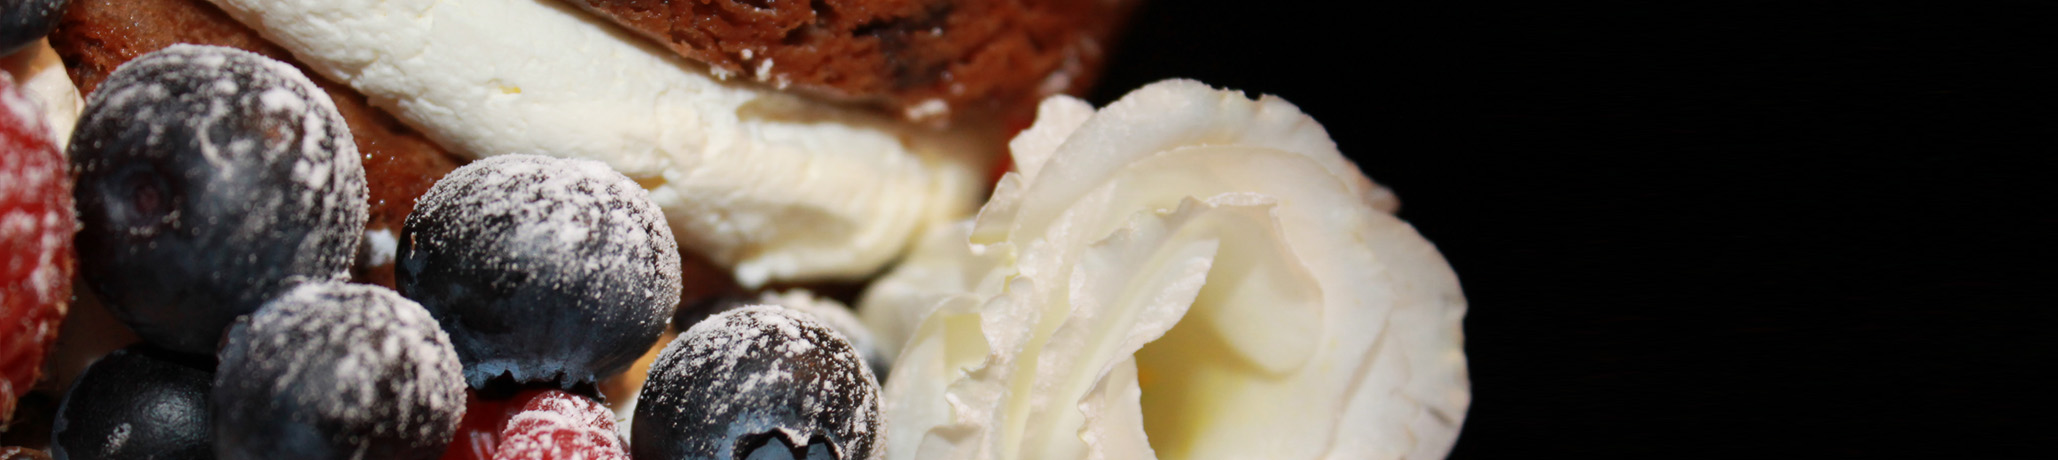 Scrumptious wedding desserts